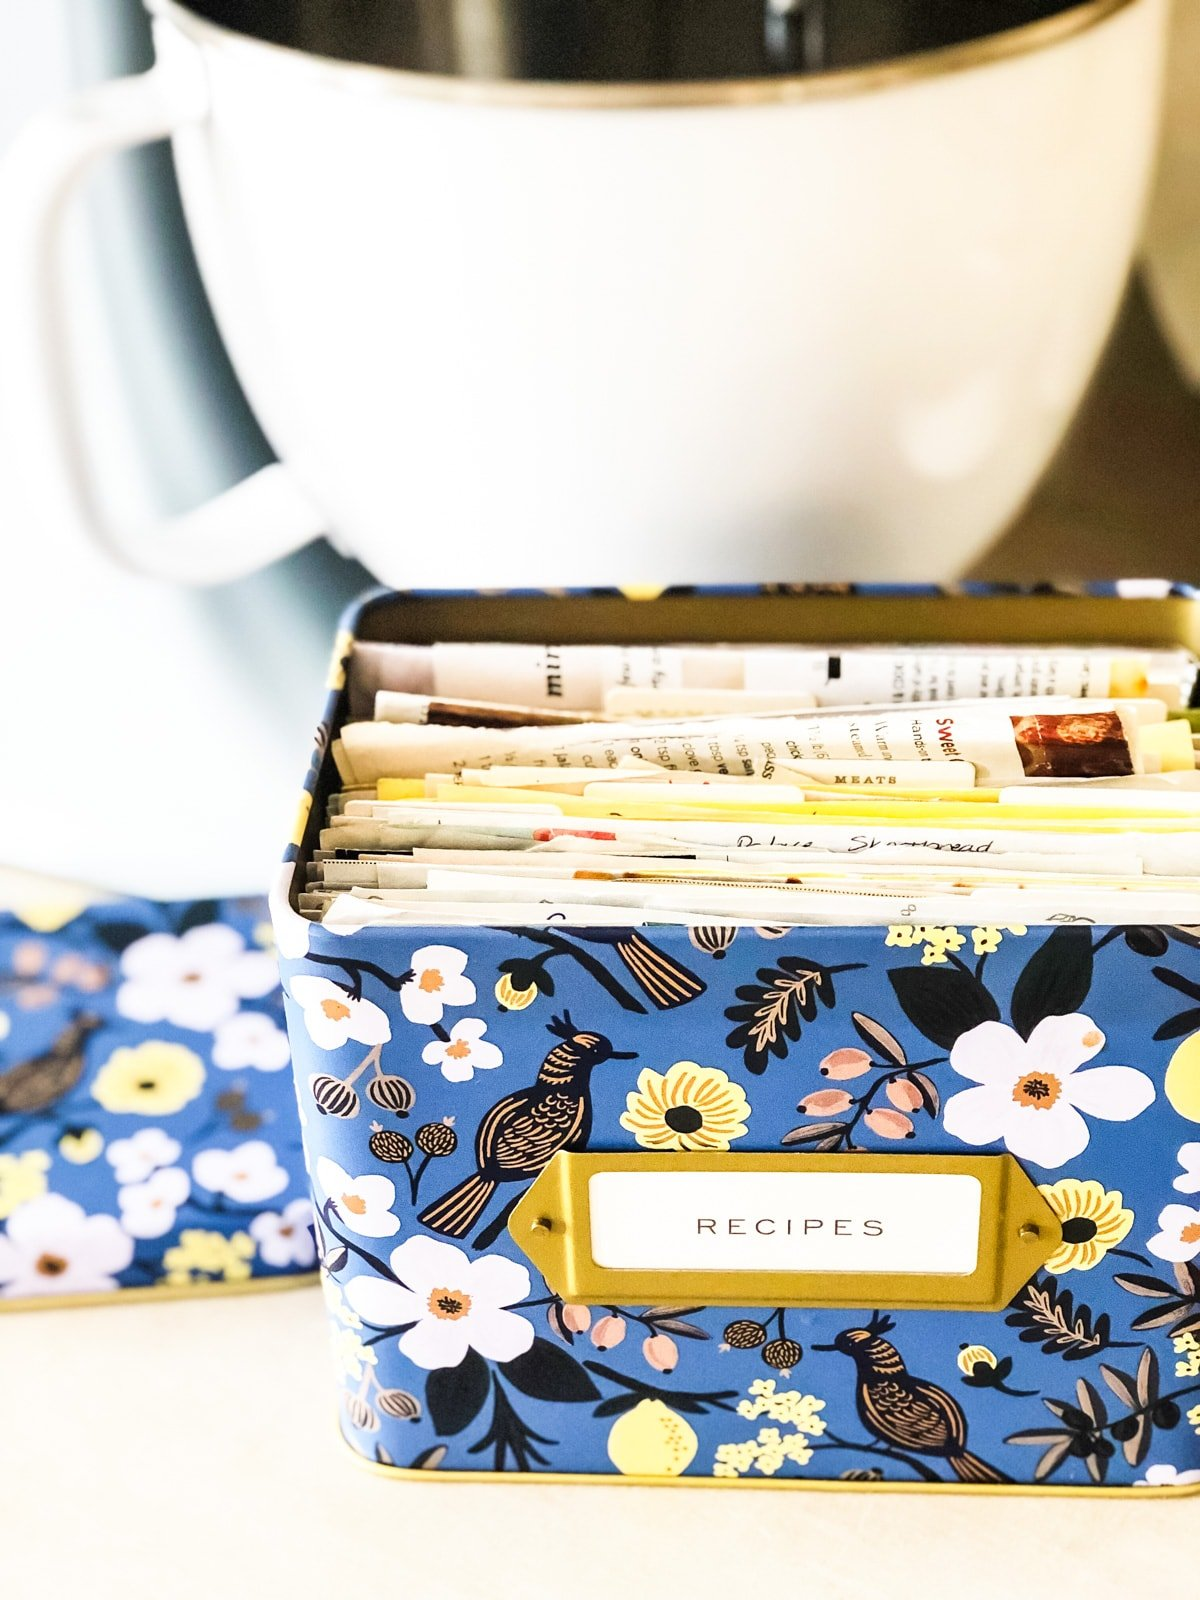 a flowery recipe box sitting on a kitchen counter in front of a kitchen mixer